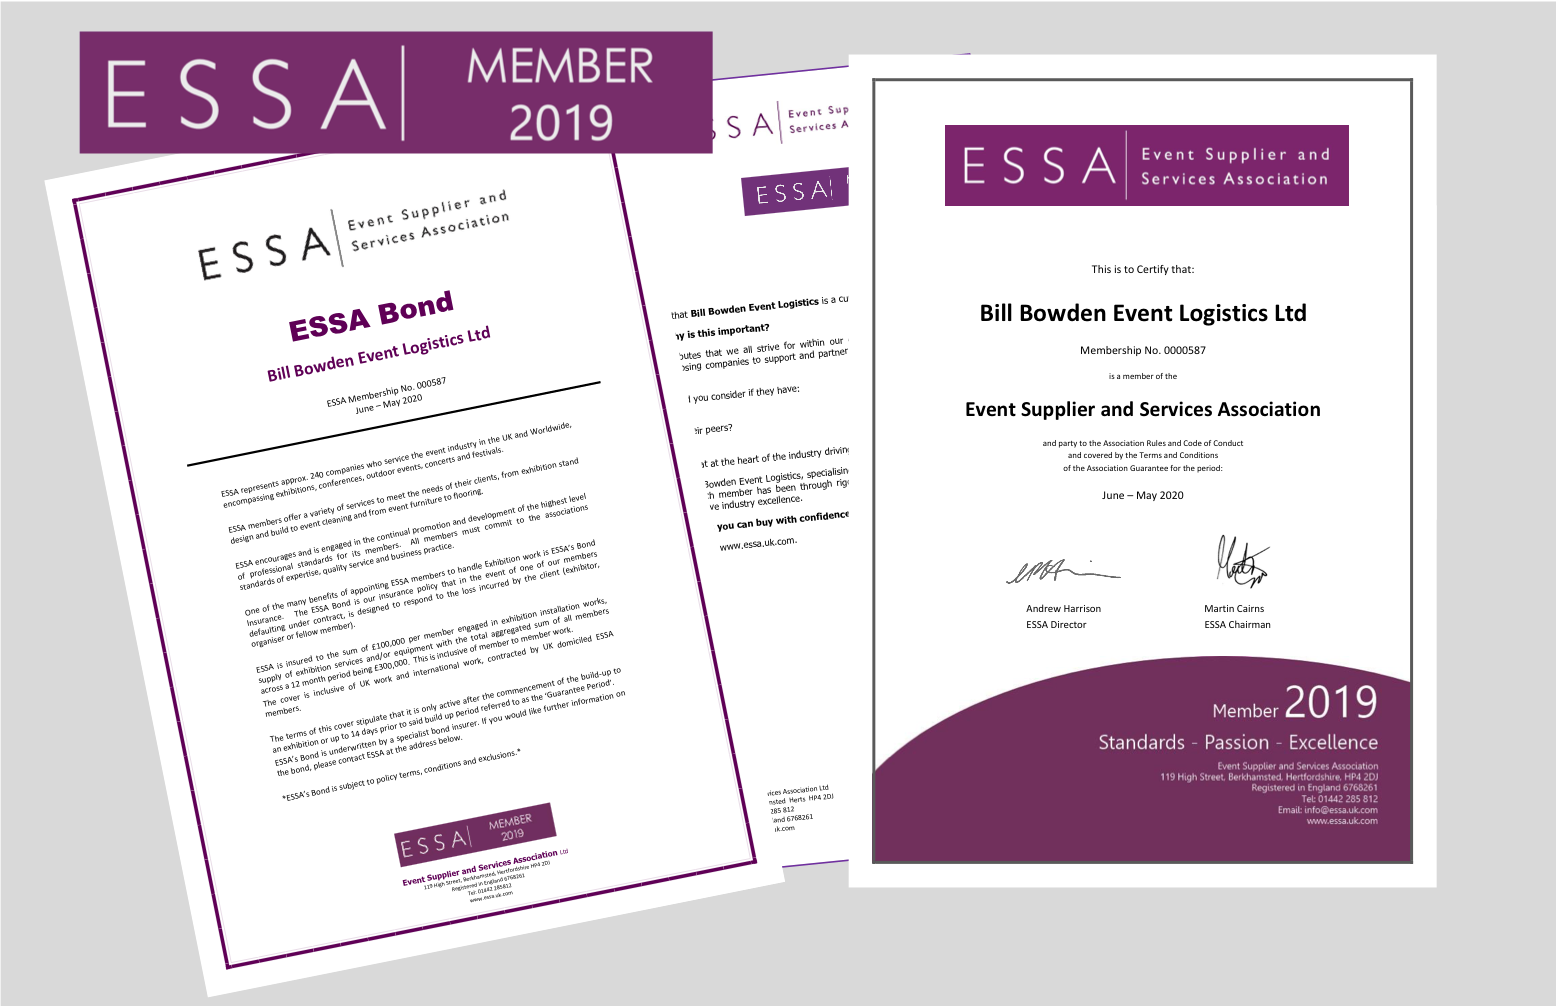 ESSA Documentation for BBEL 2019